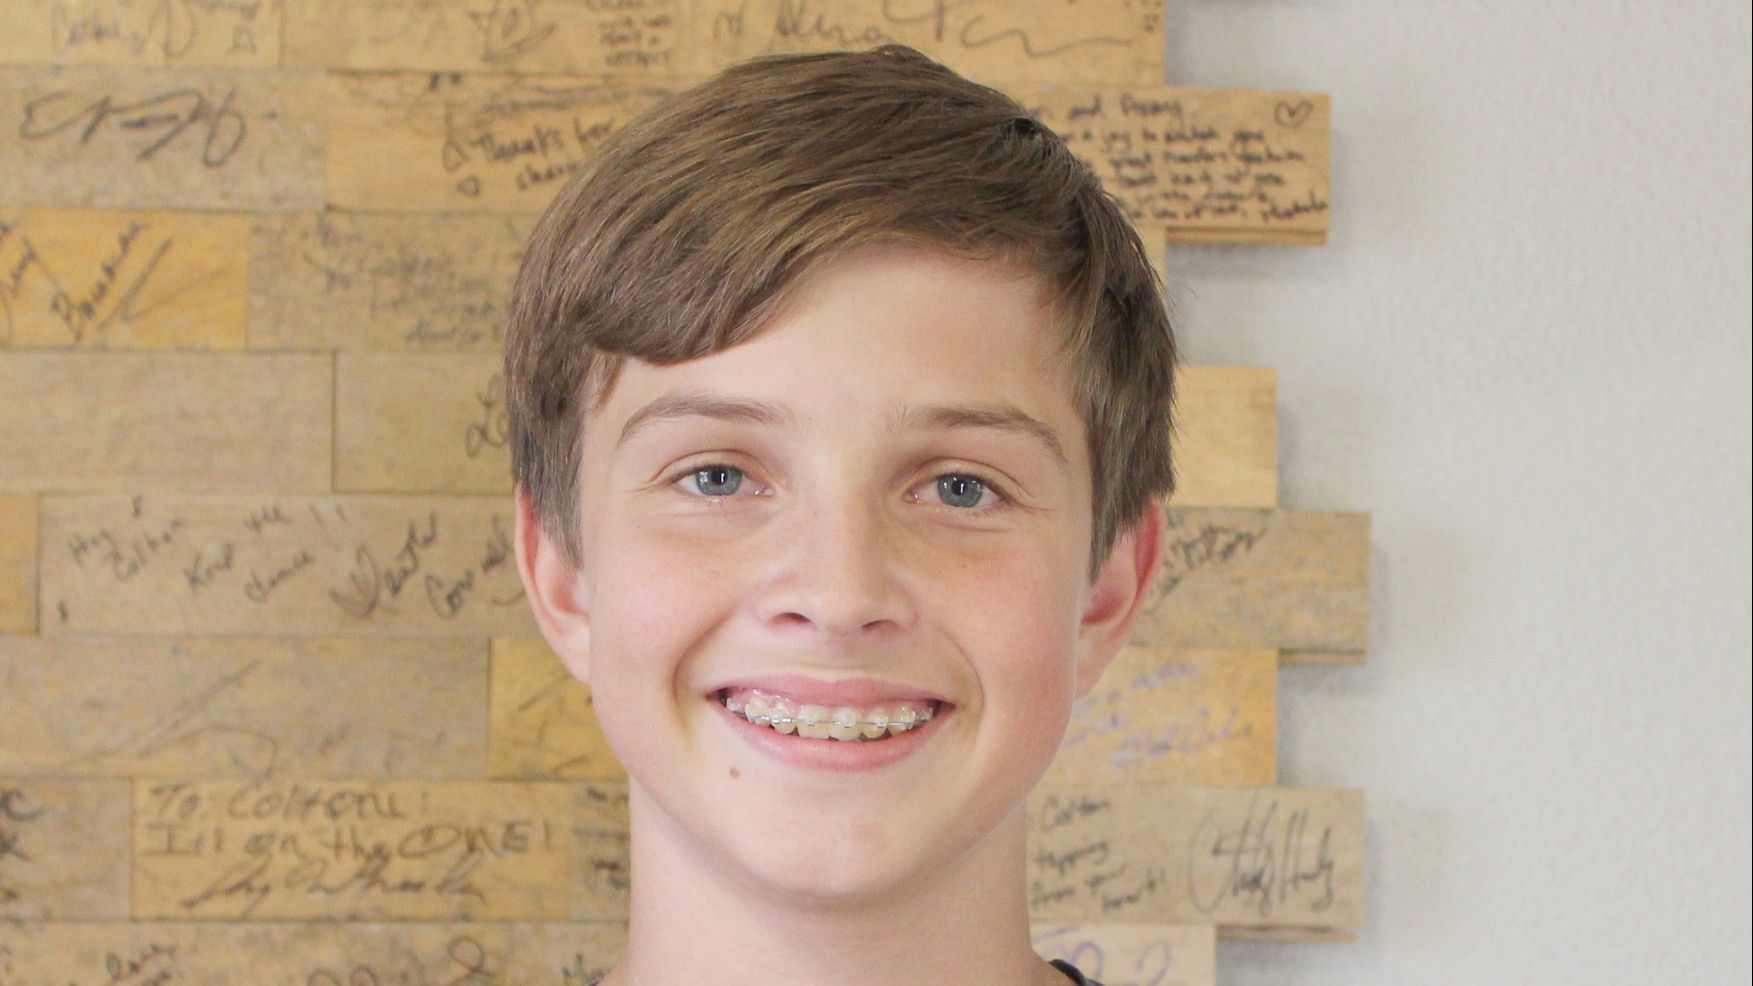 Ramona High School sophomore Colton Hagler is preparing to compete in the World Tap Championships next month in Germany.